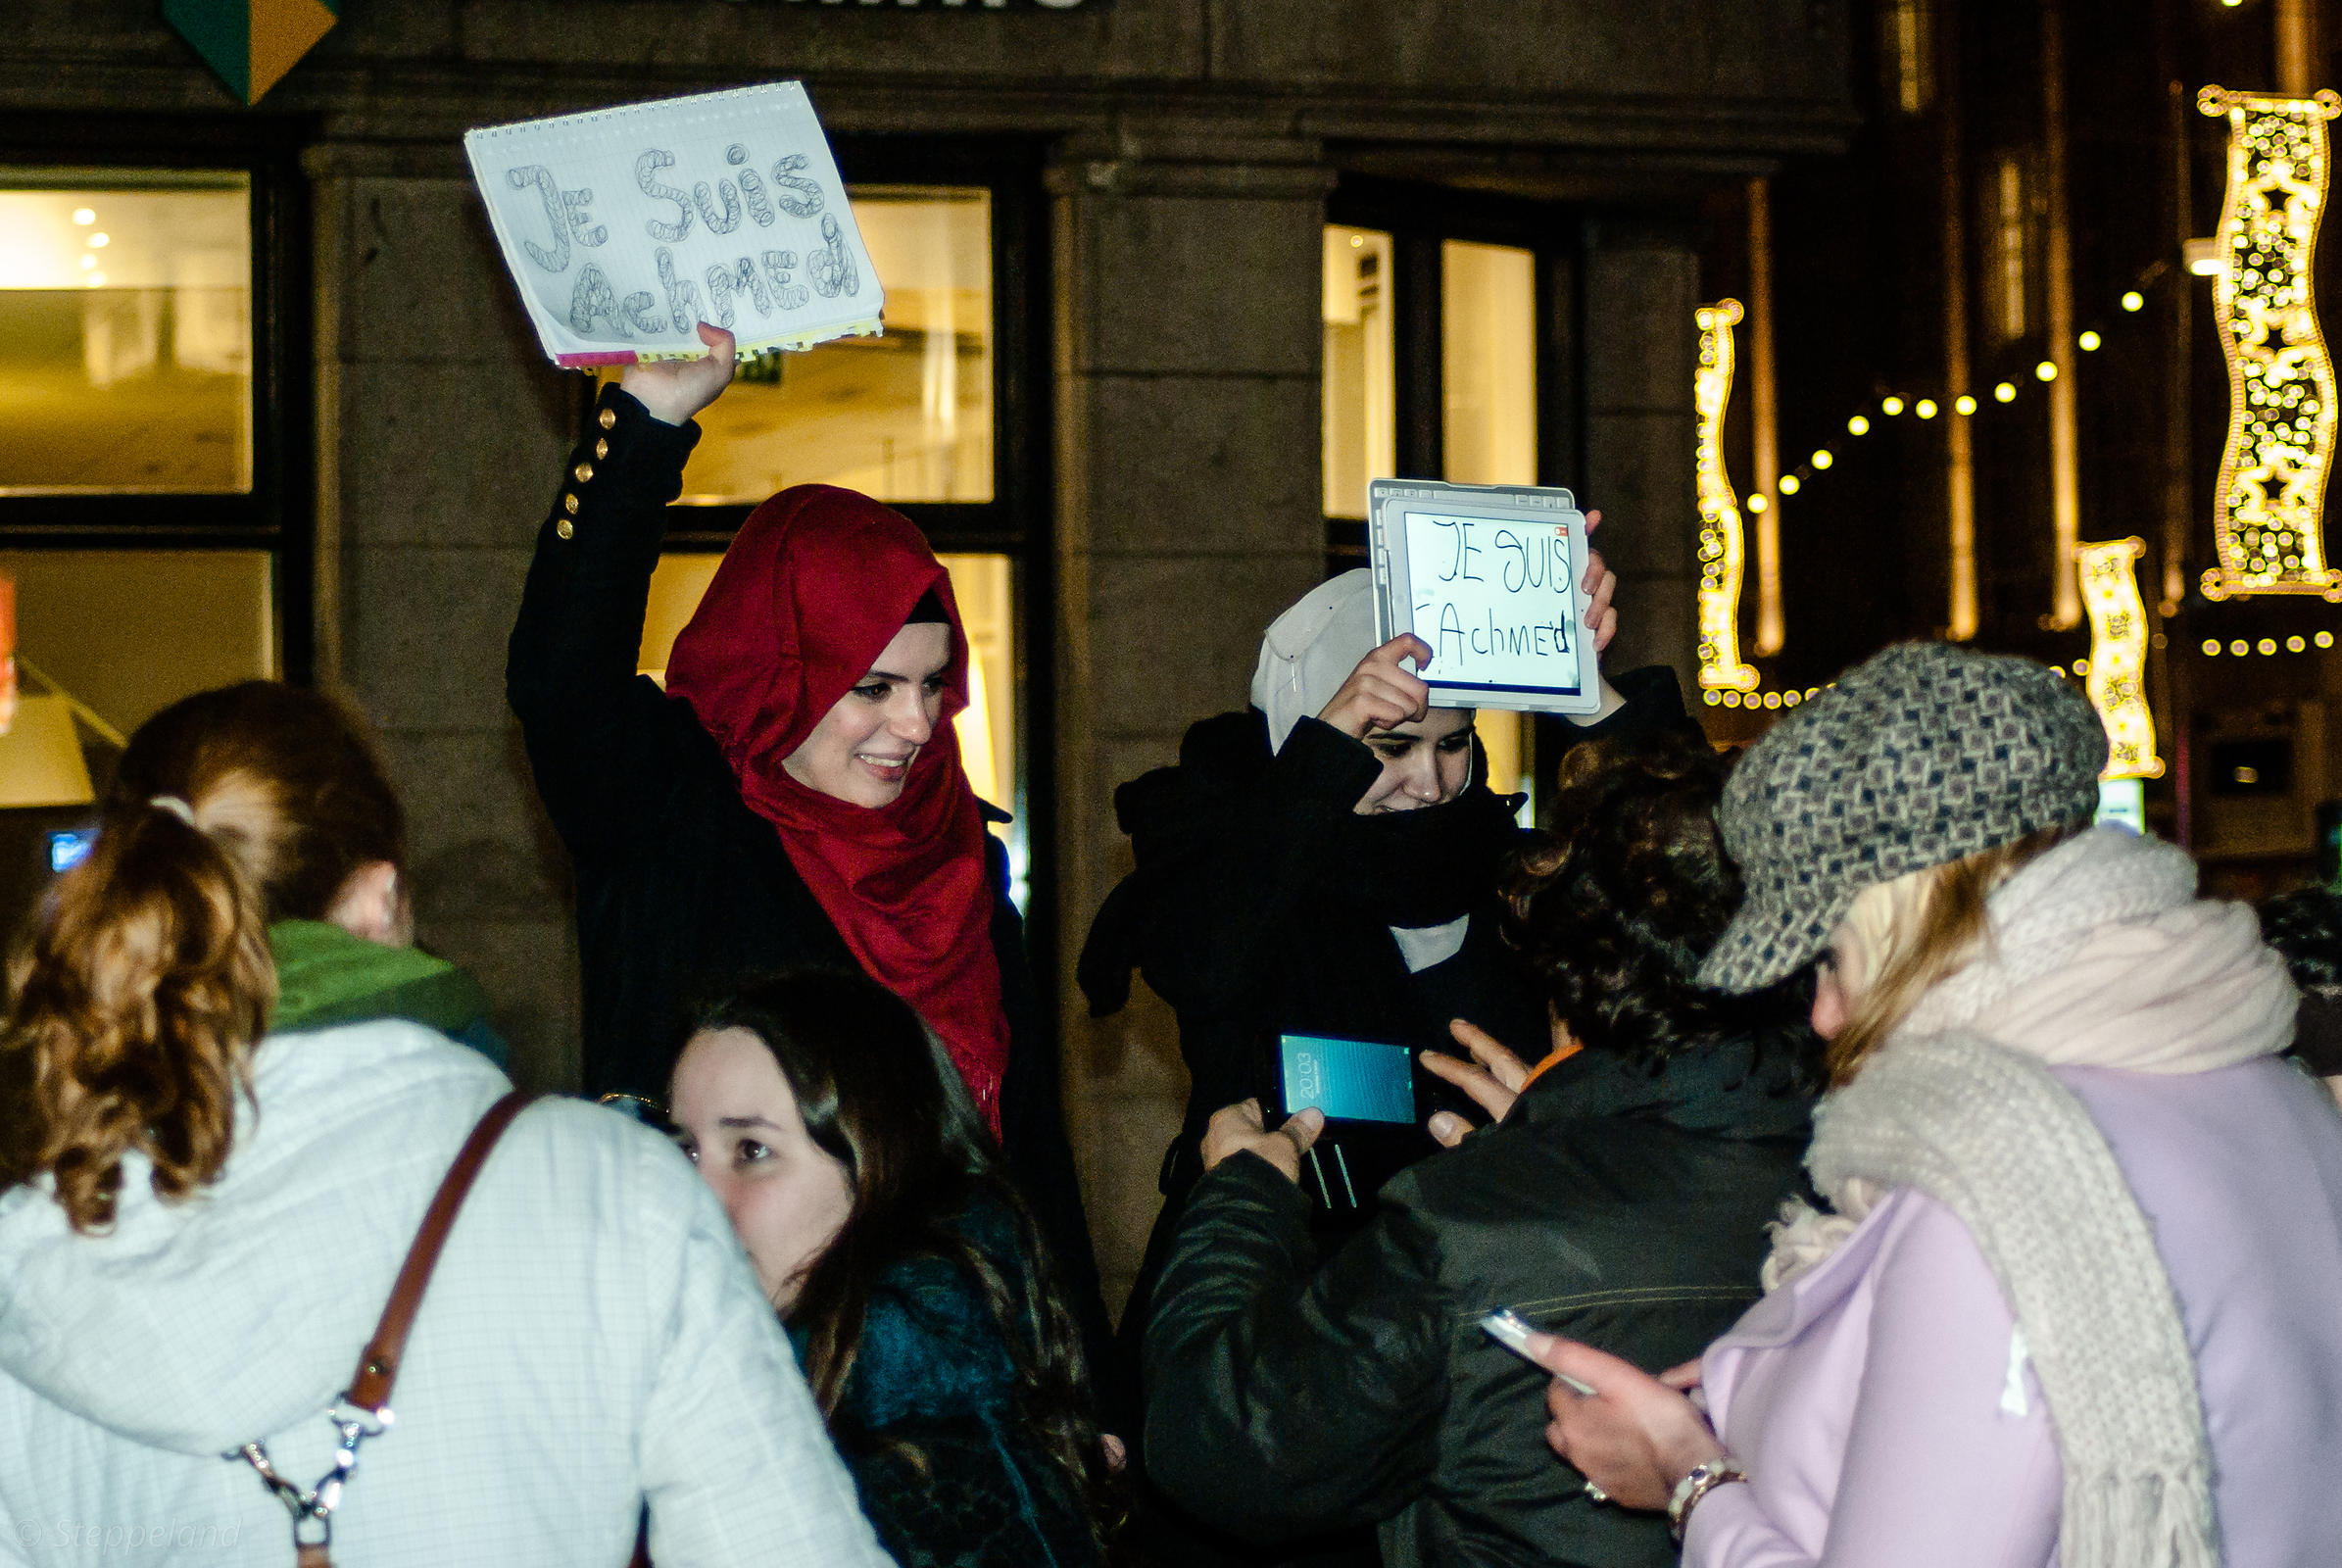 Amsterdam, Netherlands 2015-01-08: Two young woman wearing a Islamic headscarf holding signs 'Je suis Achmed'